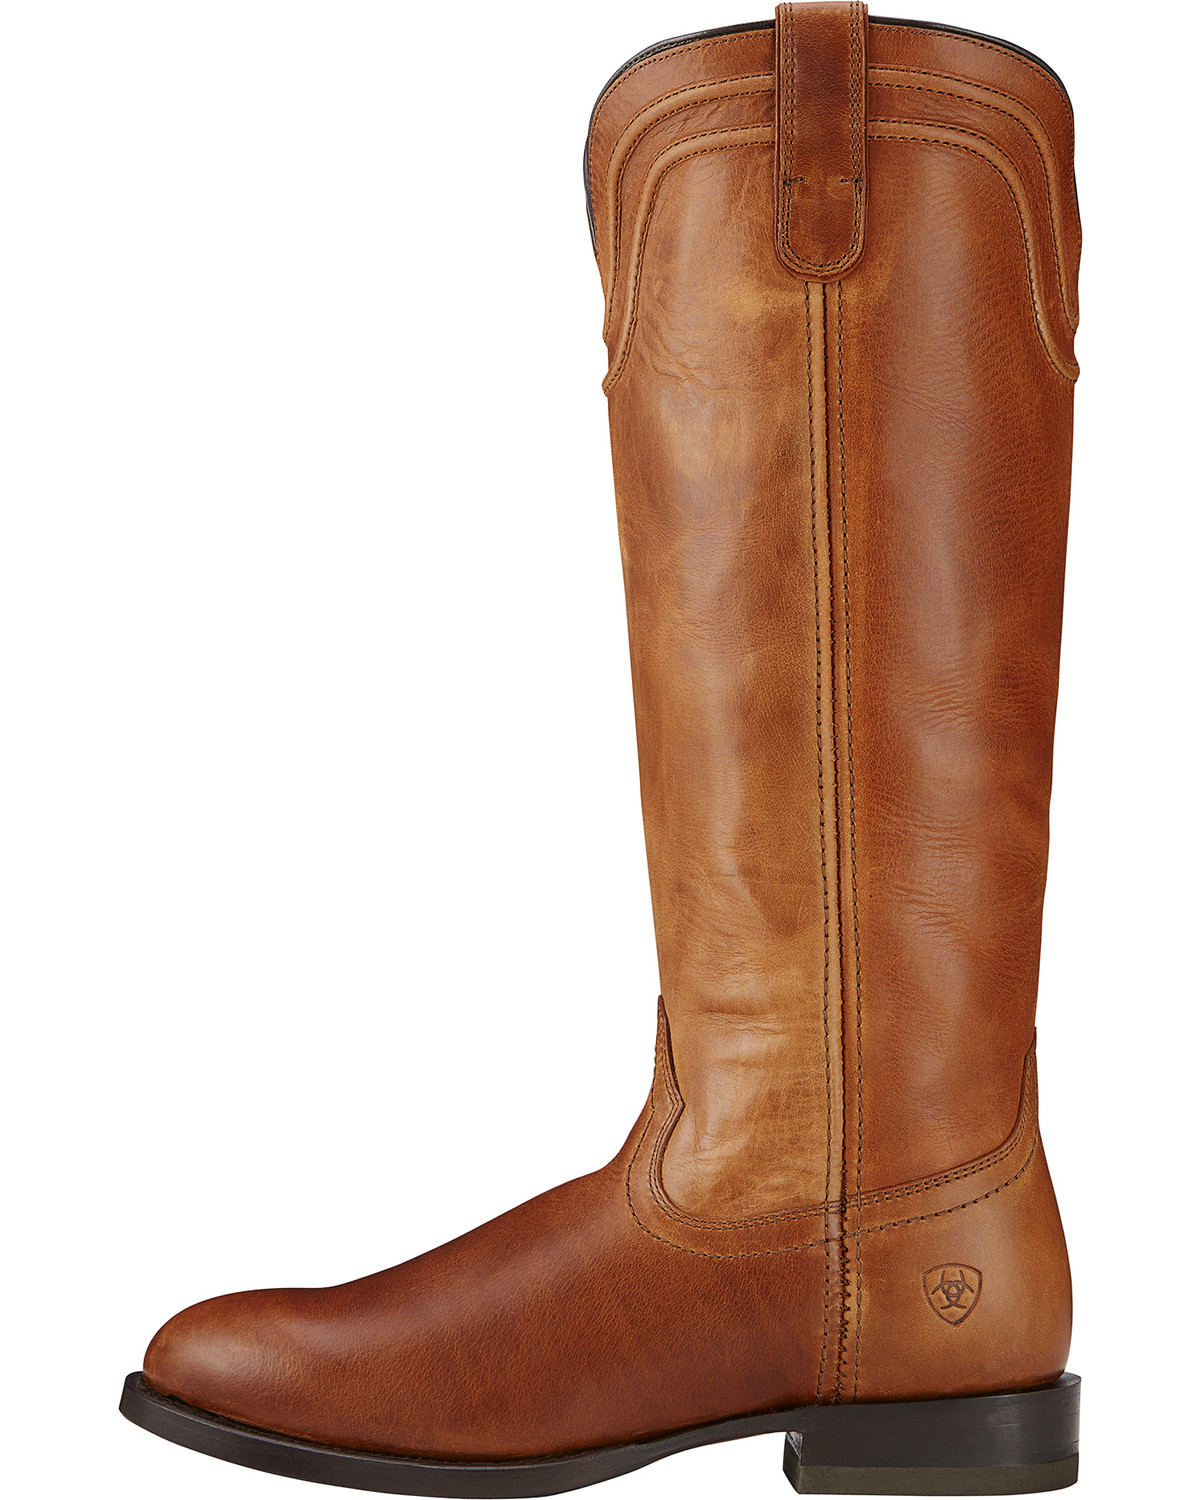 Ariat About Town Women's Tall Boots - Round Toe | Sheplers